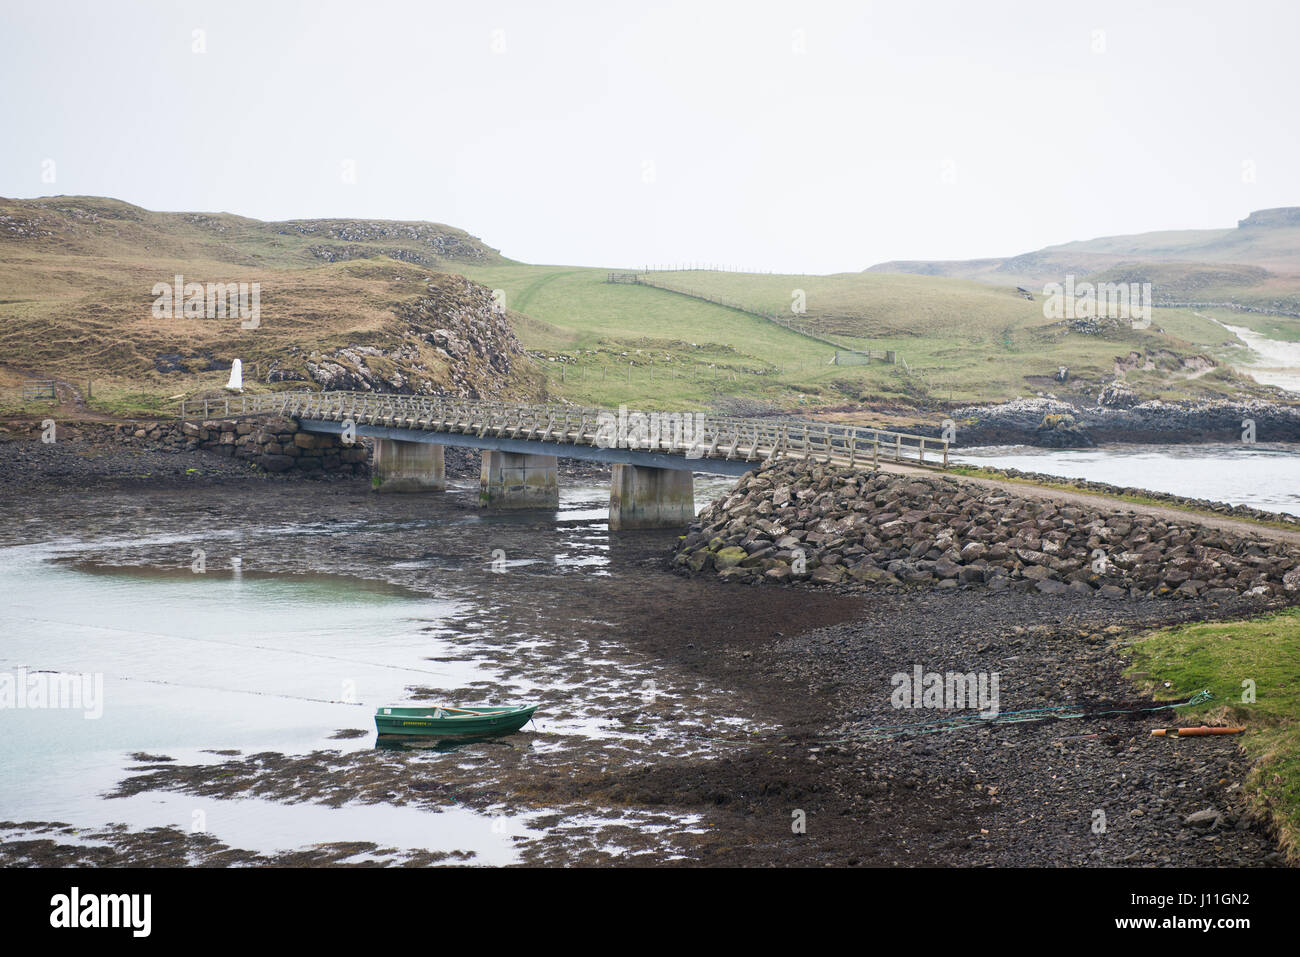 The causeway joining the islands of Canna and Sanday, Inner Hebrides,Scotland - Stock Image